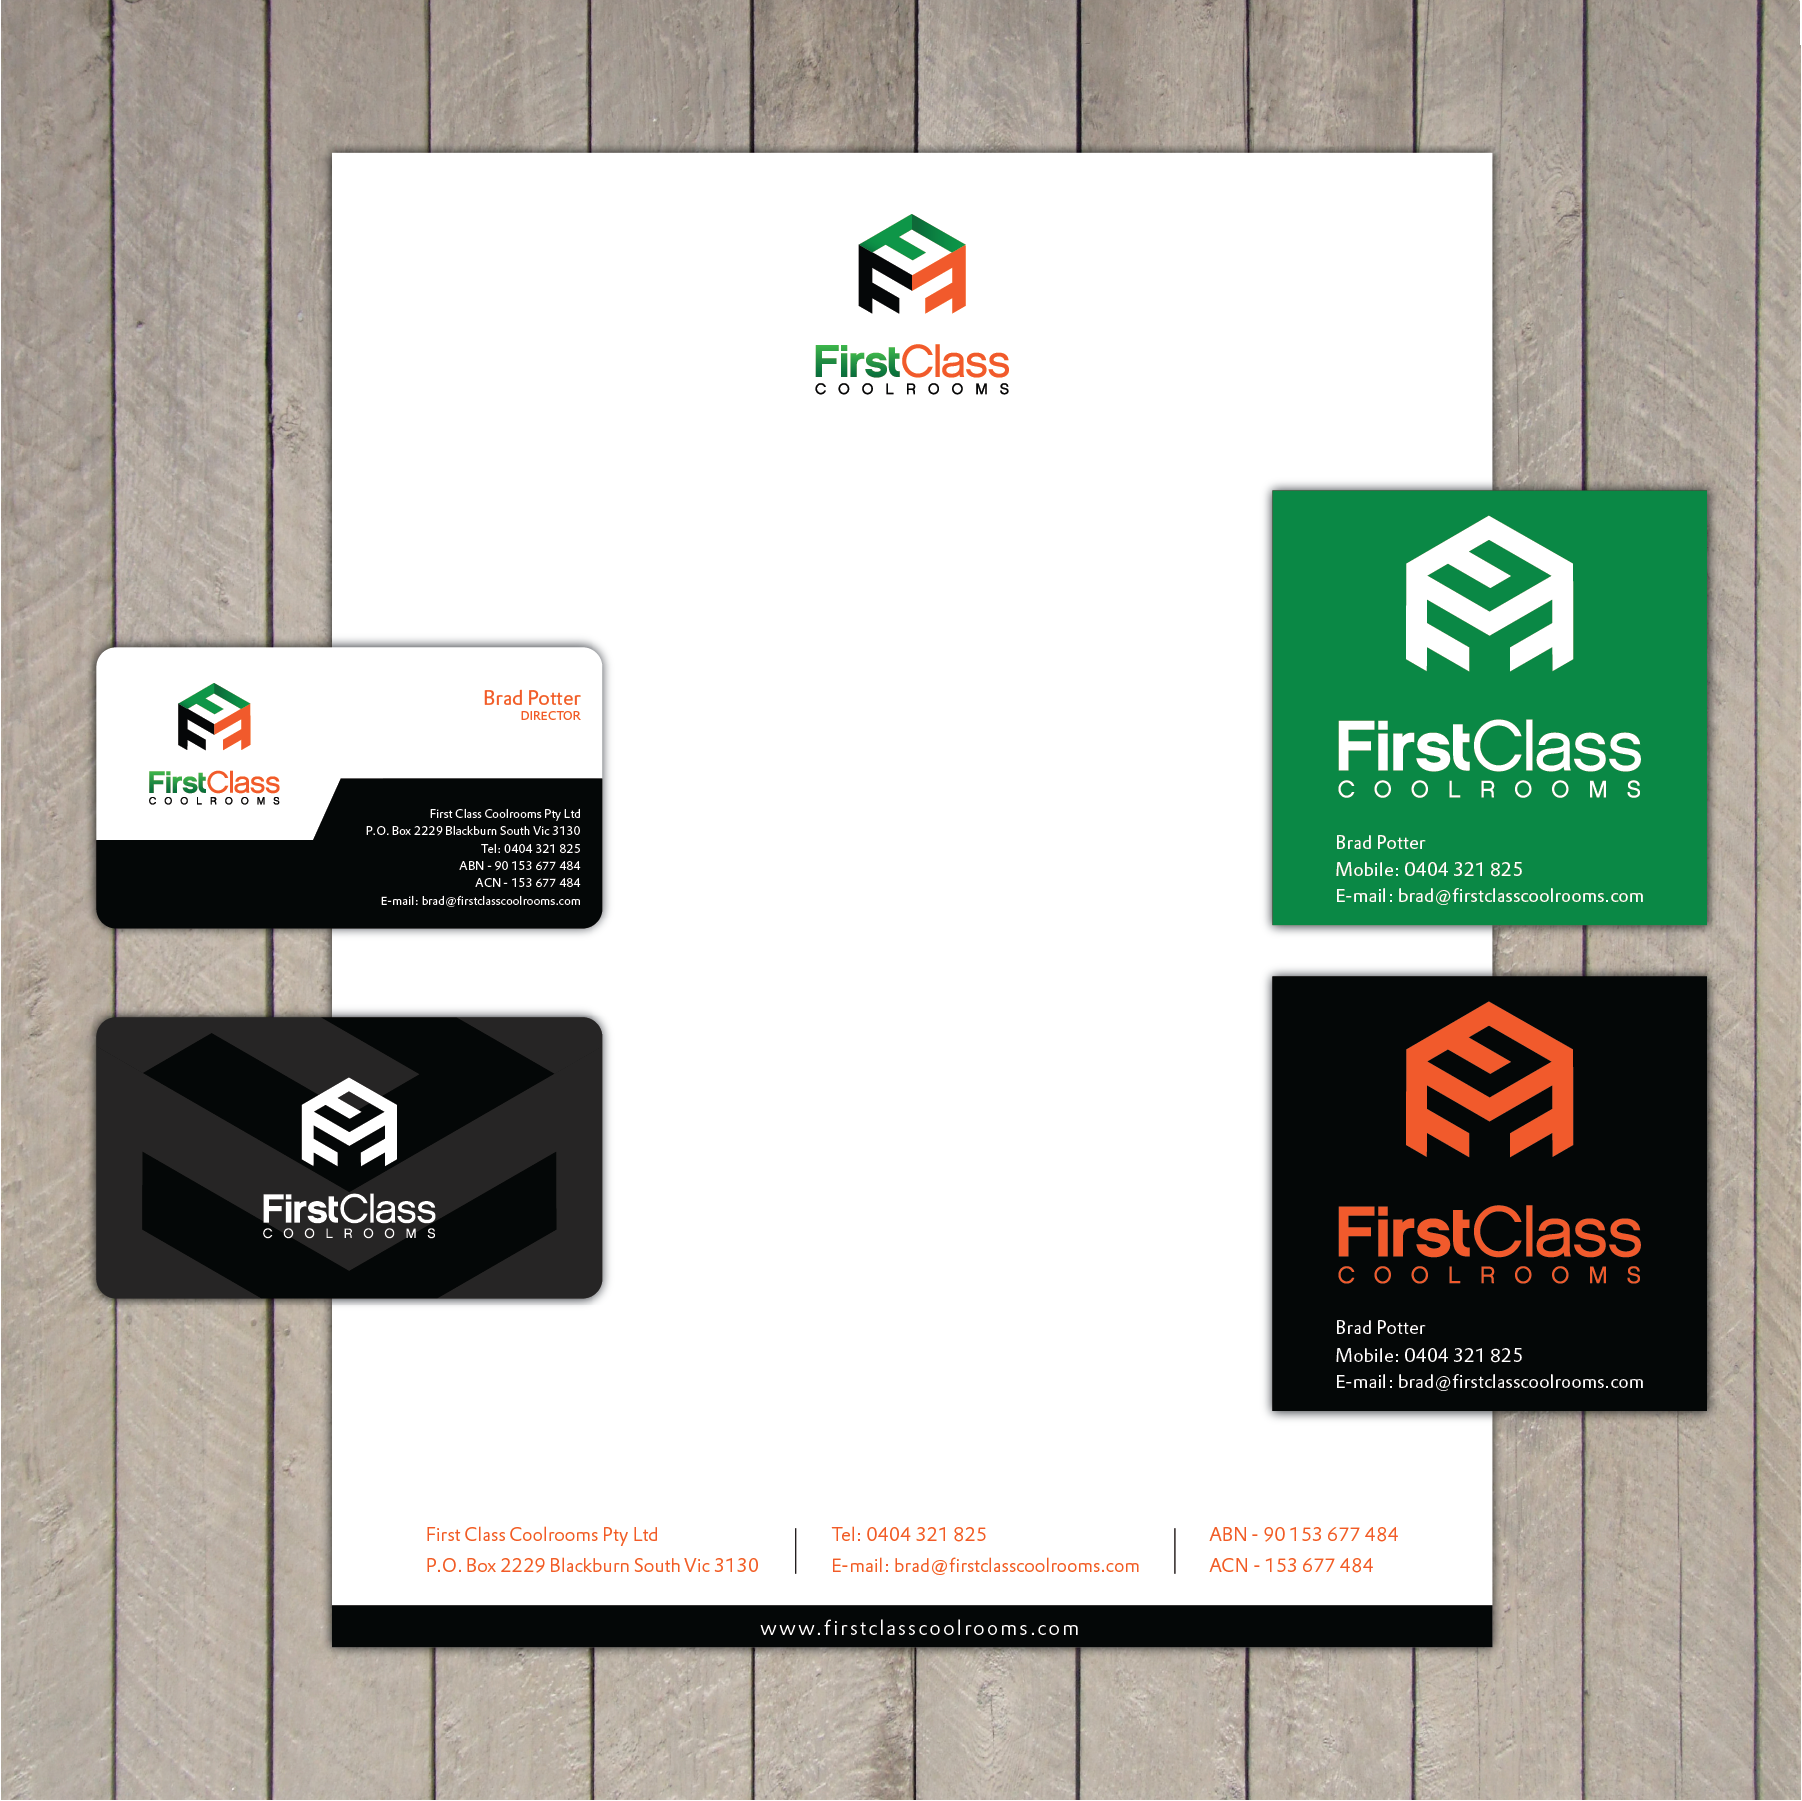 First Class Coolrooms needs a new stationery